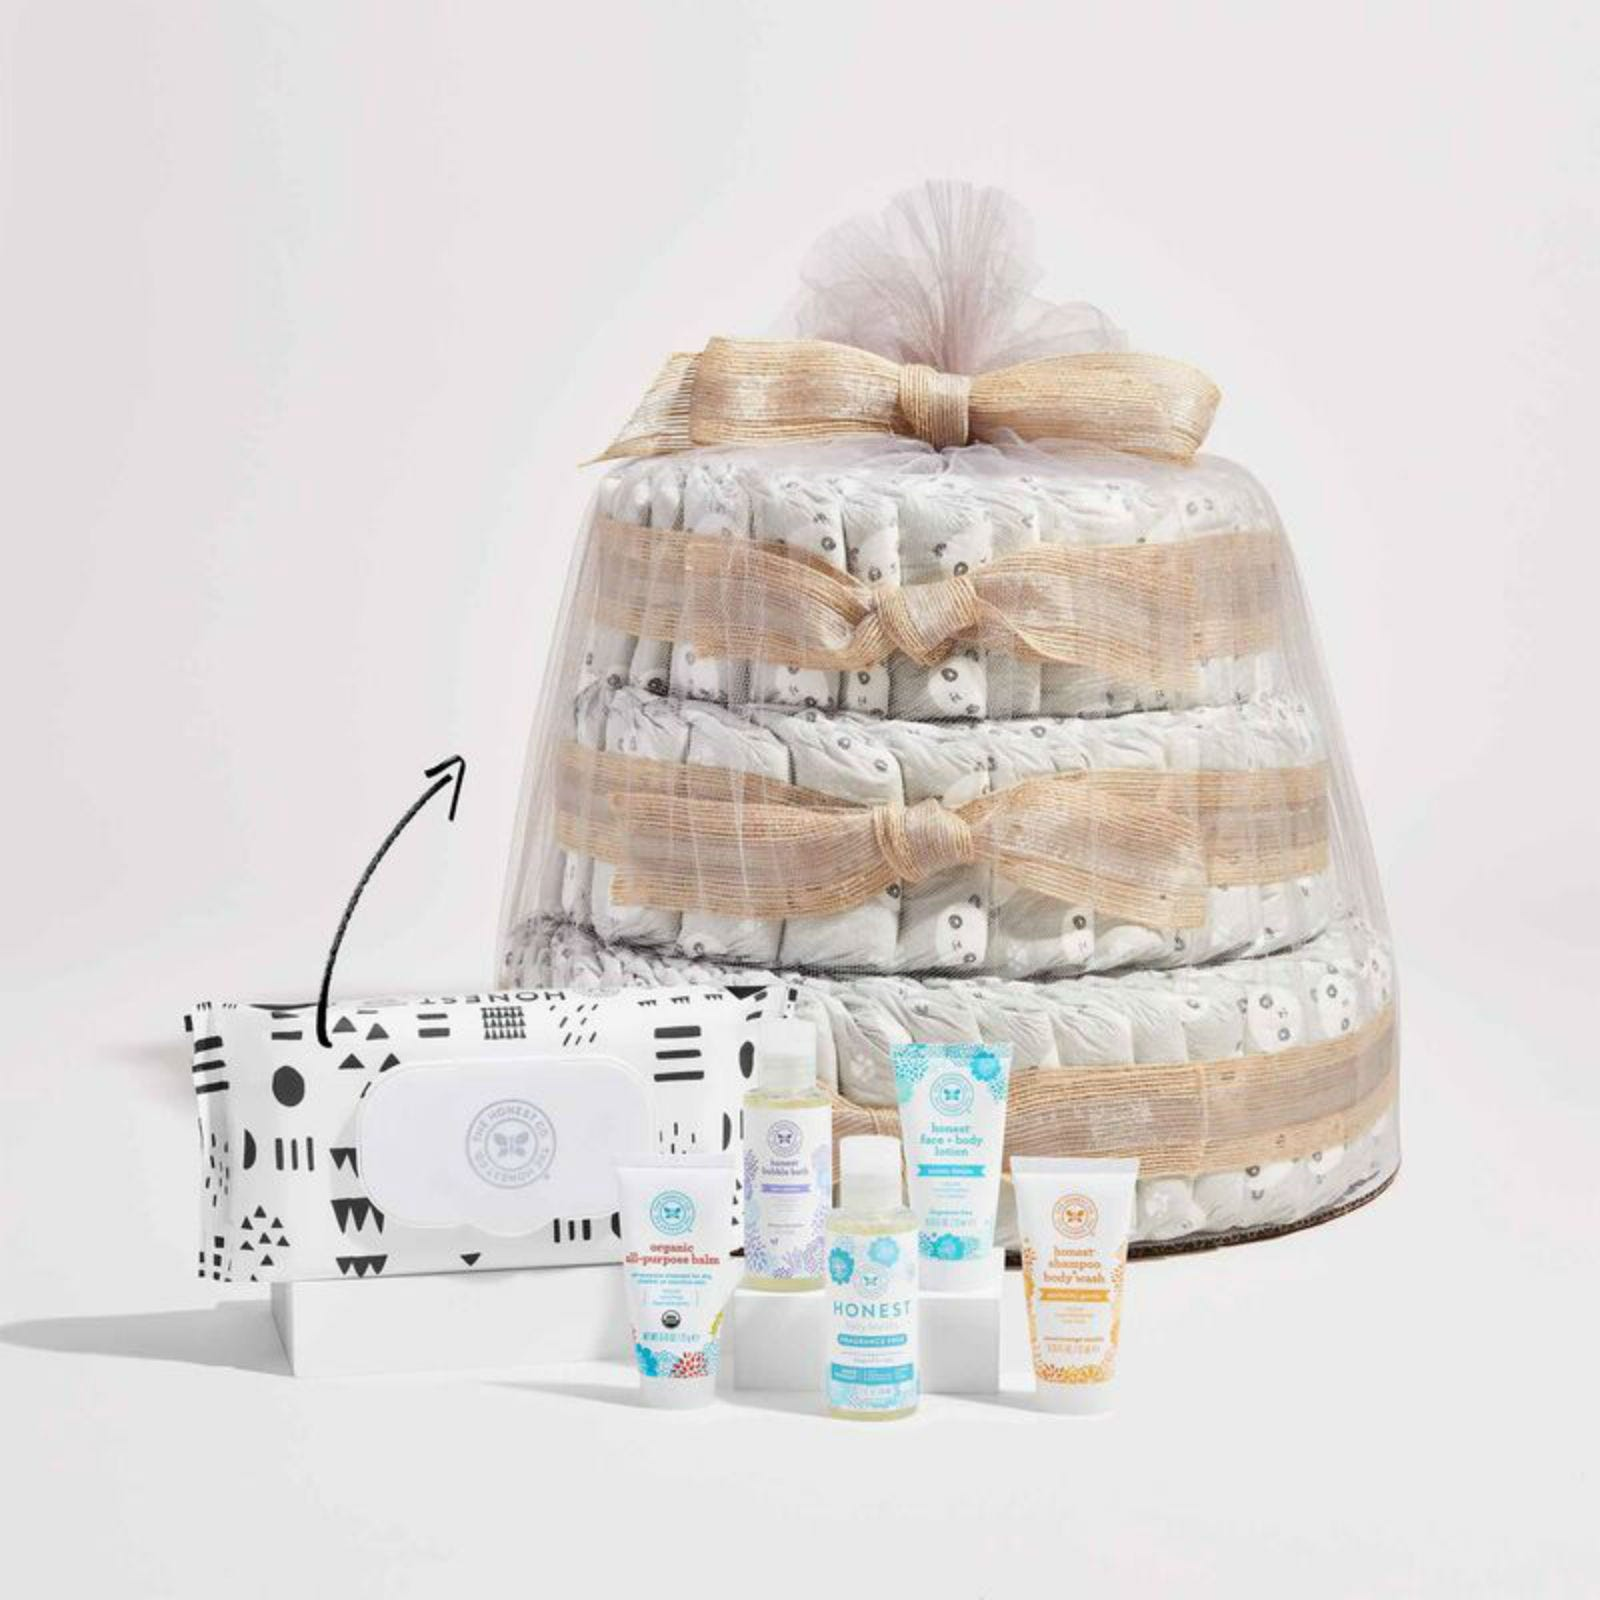 A pack of wipes, a tube each of All-Purpose Lip Balm, Bubble Bath, Baby Laundry Detergent, Face + Body Lotion, and Shampoo + Body Wash lined up in front of the Honest Diaper Cake.